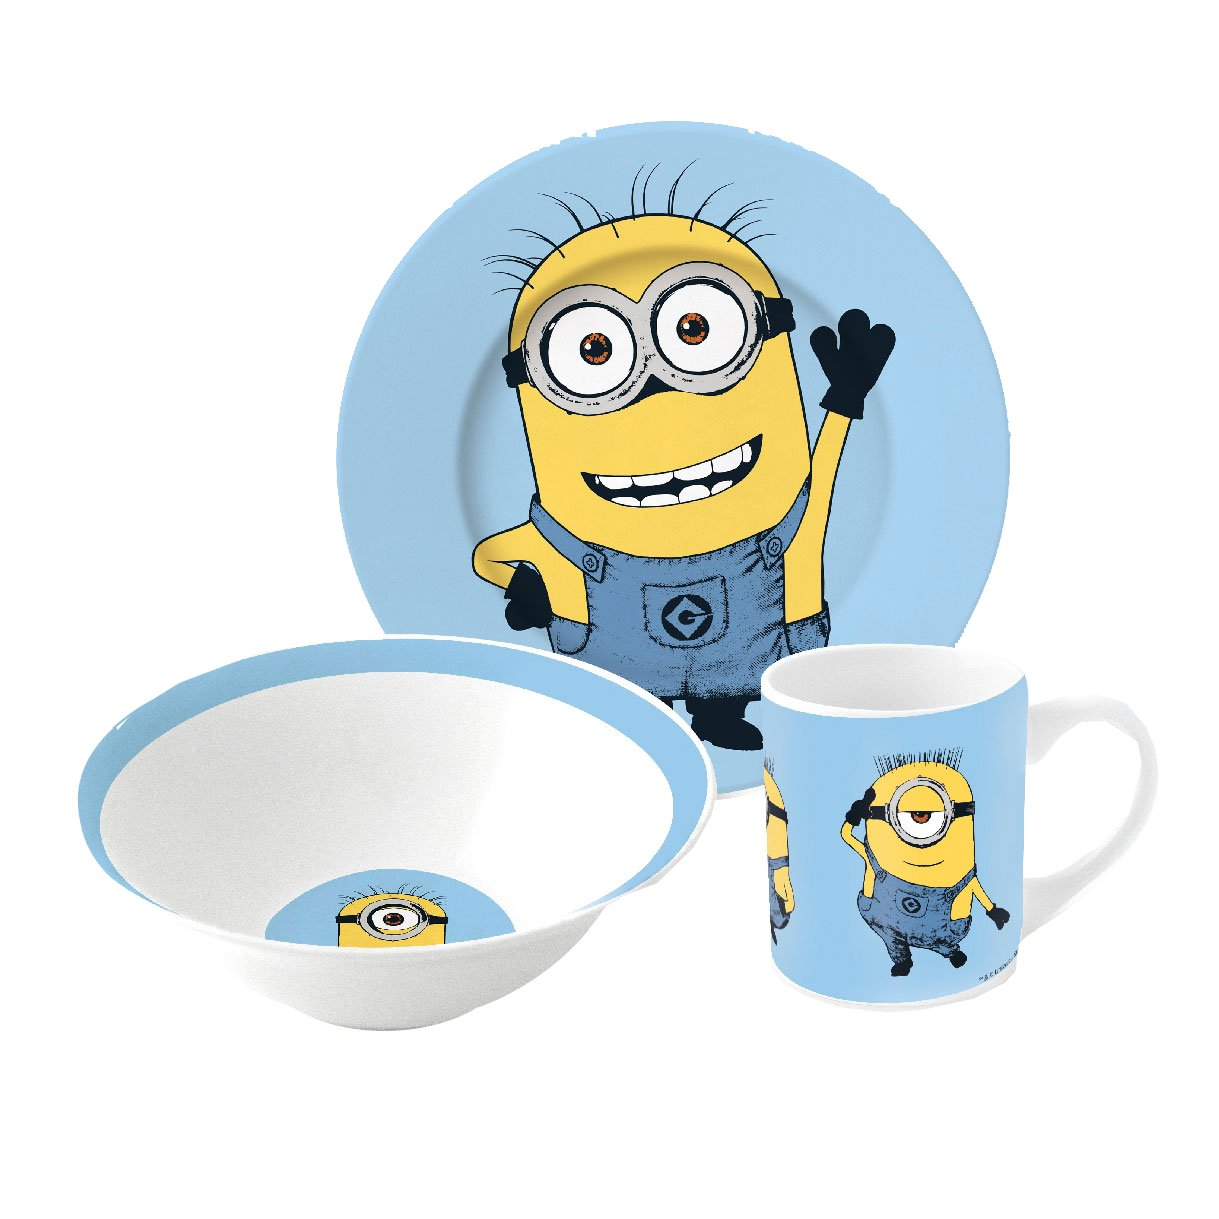 3 Piece Ceramic Snack Set - MINIONS Boyz Toys 77065